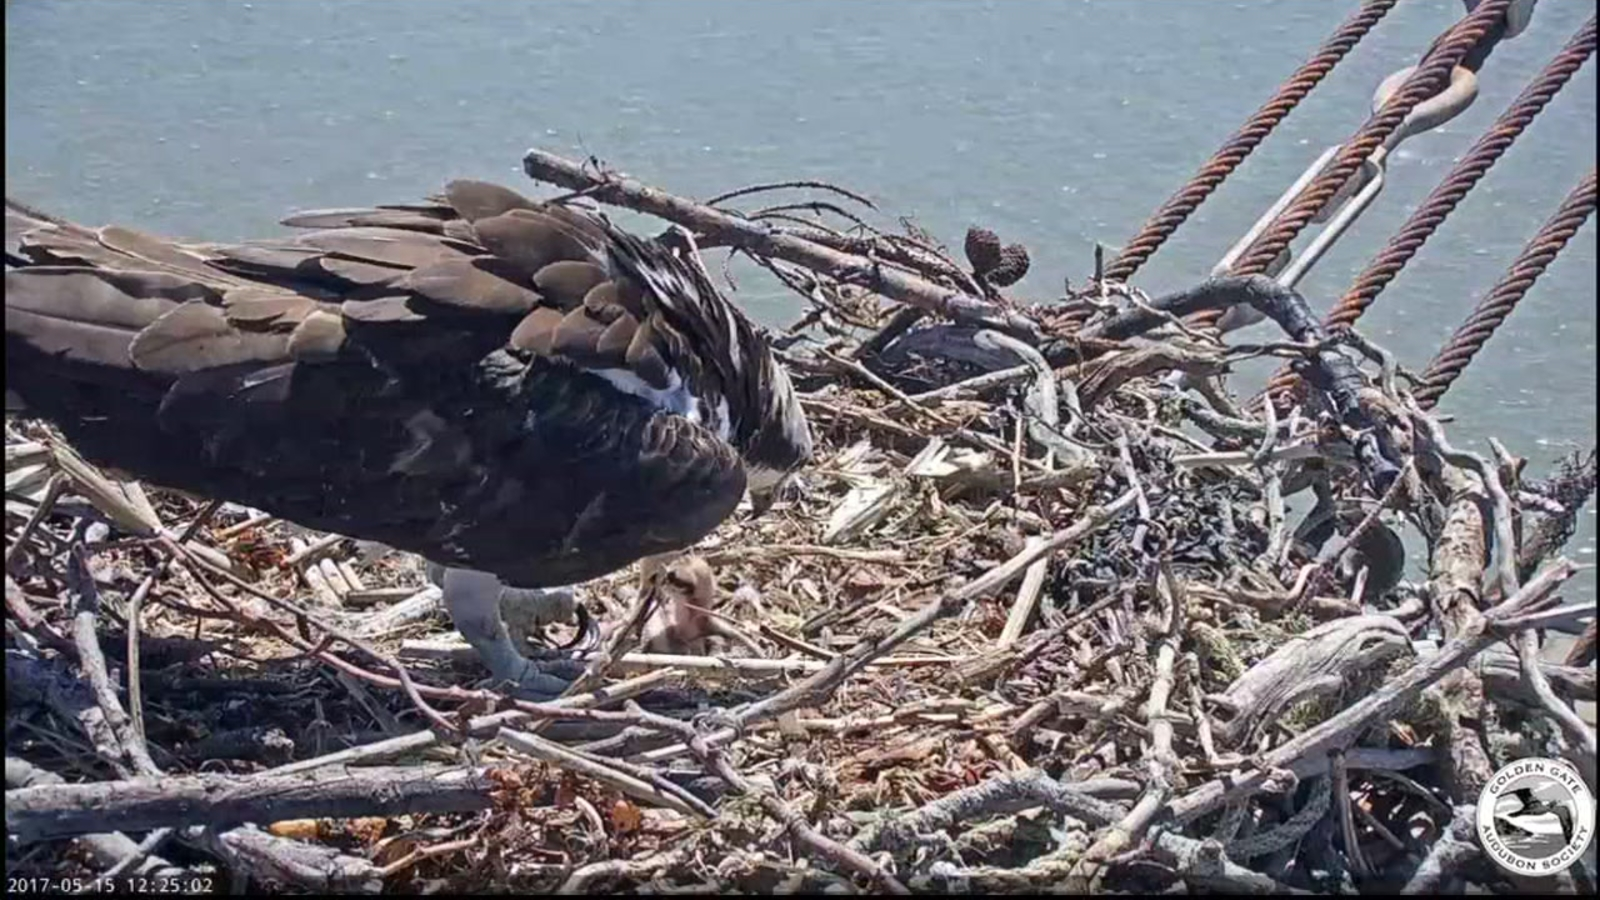 Audubon Society launches contest to name osprey chicks in